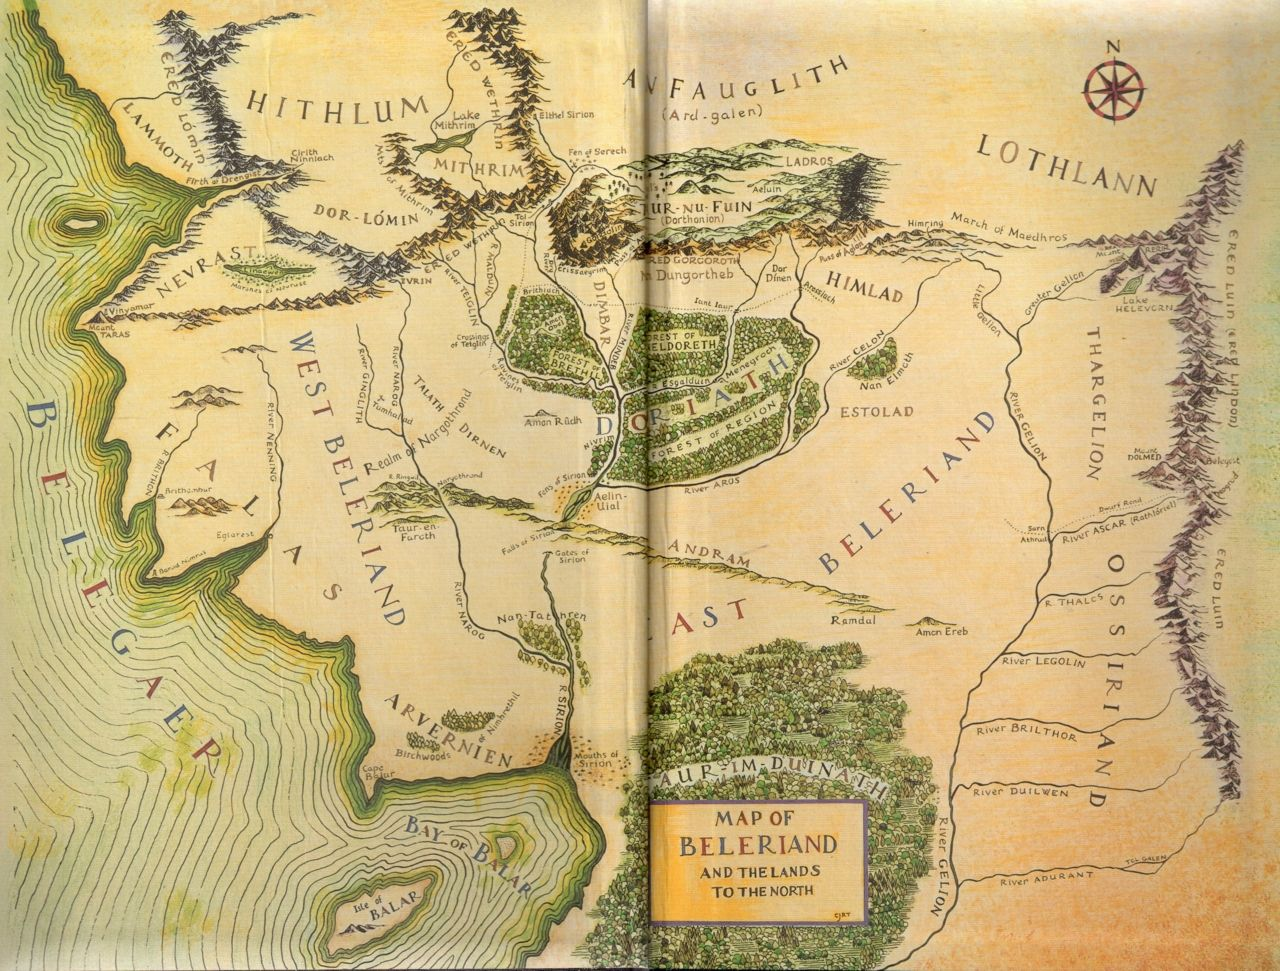 Beleriand from The Silmarillion by J.R.R. Tolkien ... on his dark materials map, doctor who map, minecraft middle earth map, thors map, fellowship of the ring map, watership down map, angband map, supernatural map, j. r. r. tolkien, marvel map, legend of zelda map, the hobbit, lord of the rings map, frodo baggins, james bond map, to kill a mockingbird map, detailed middle earth map, jak and daxter map, firefly map, the lord of the rings, tolkein map, batman map, legend of dragoon map, the hobbit map,